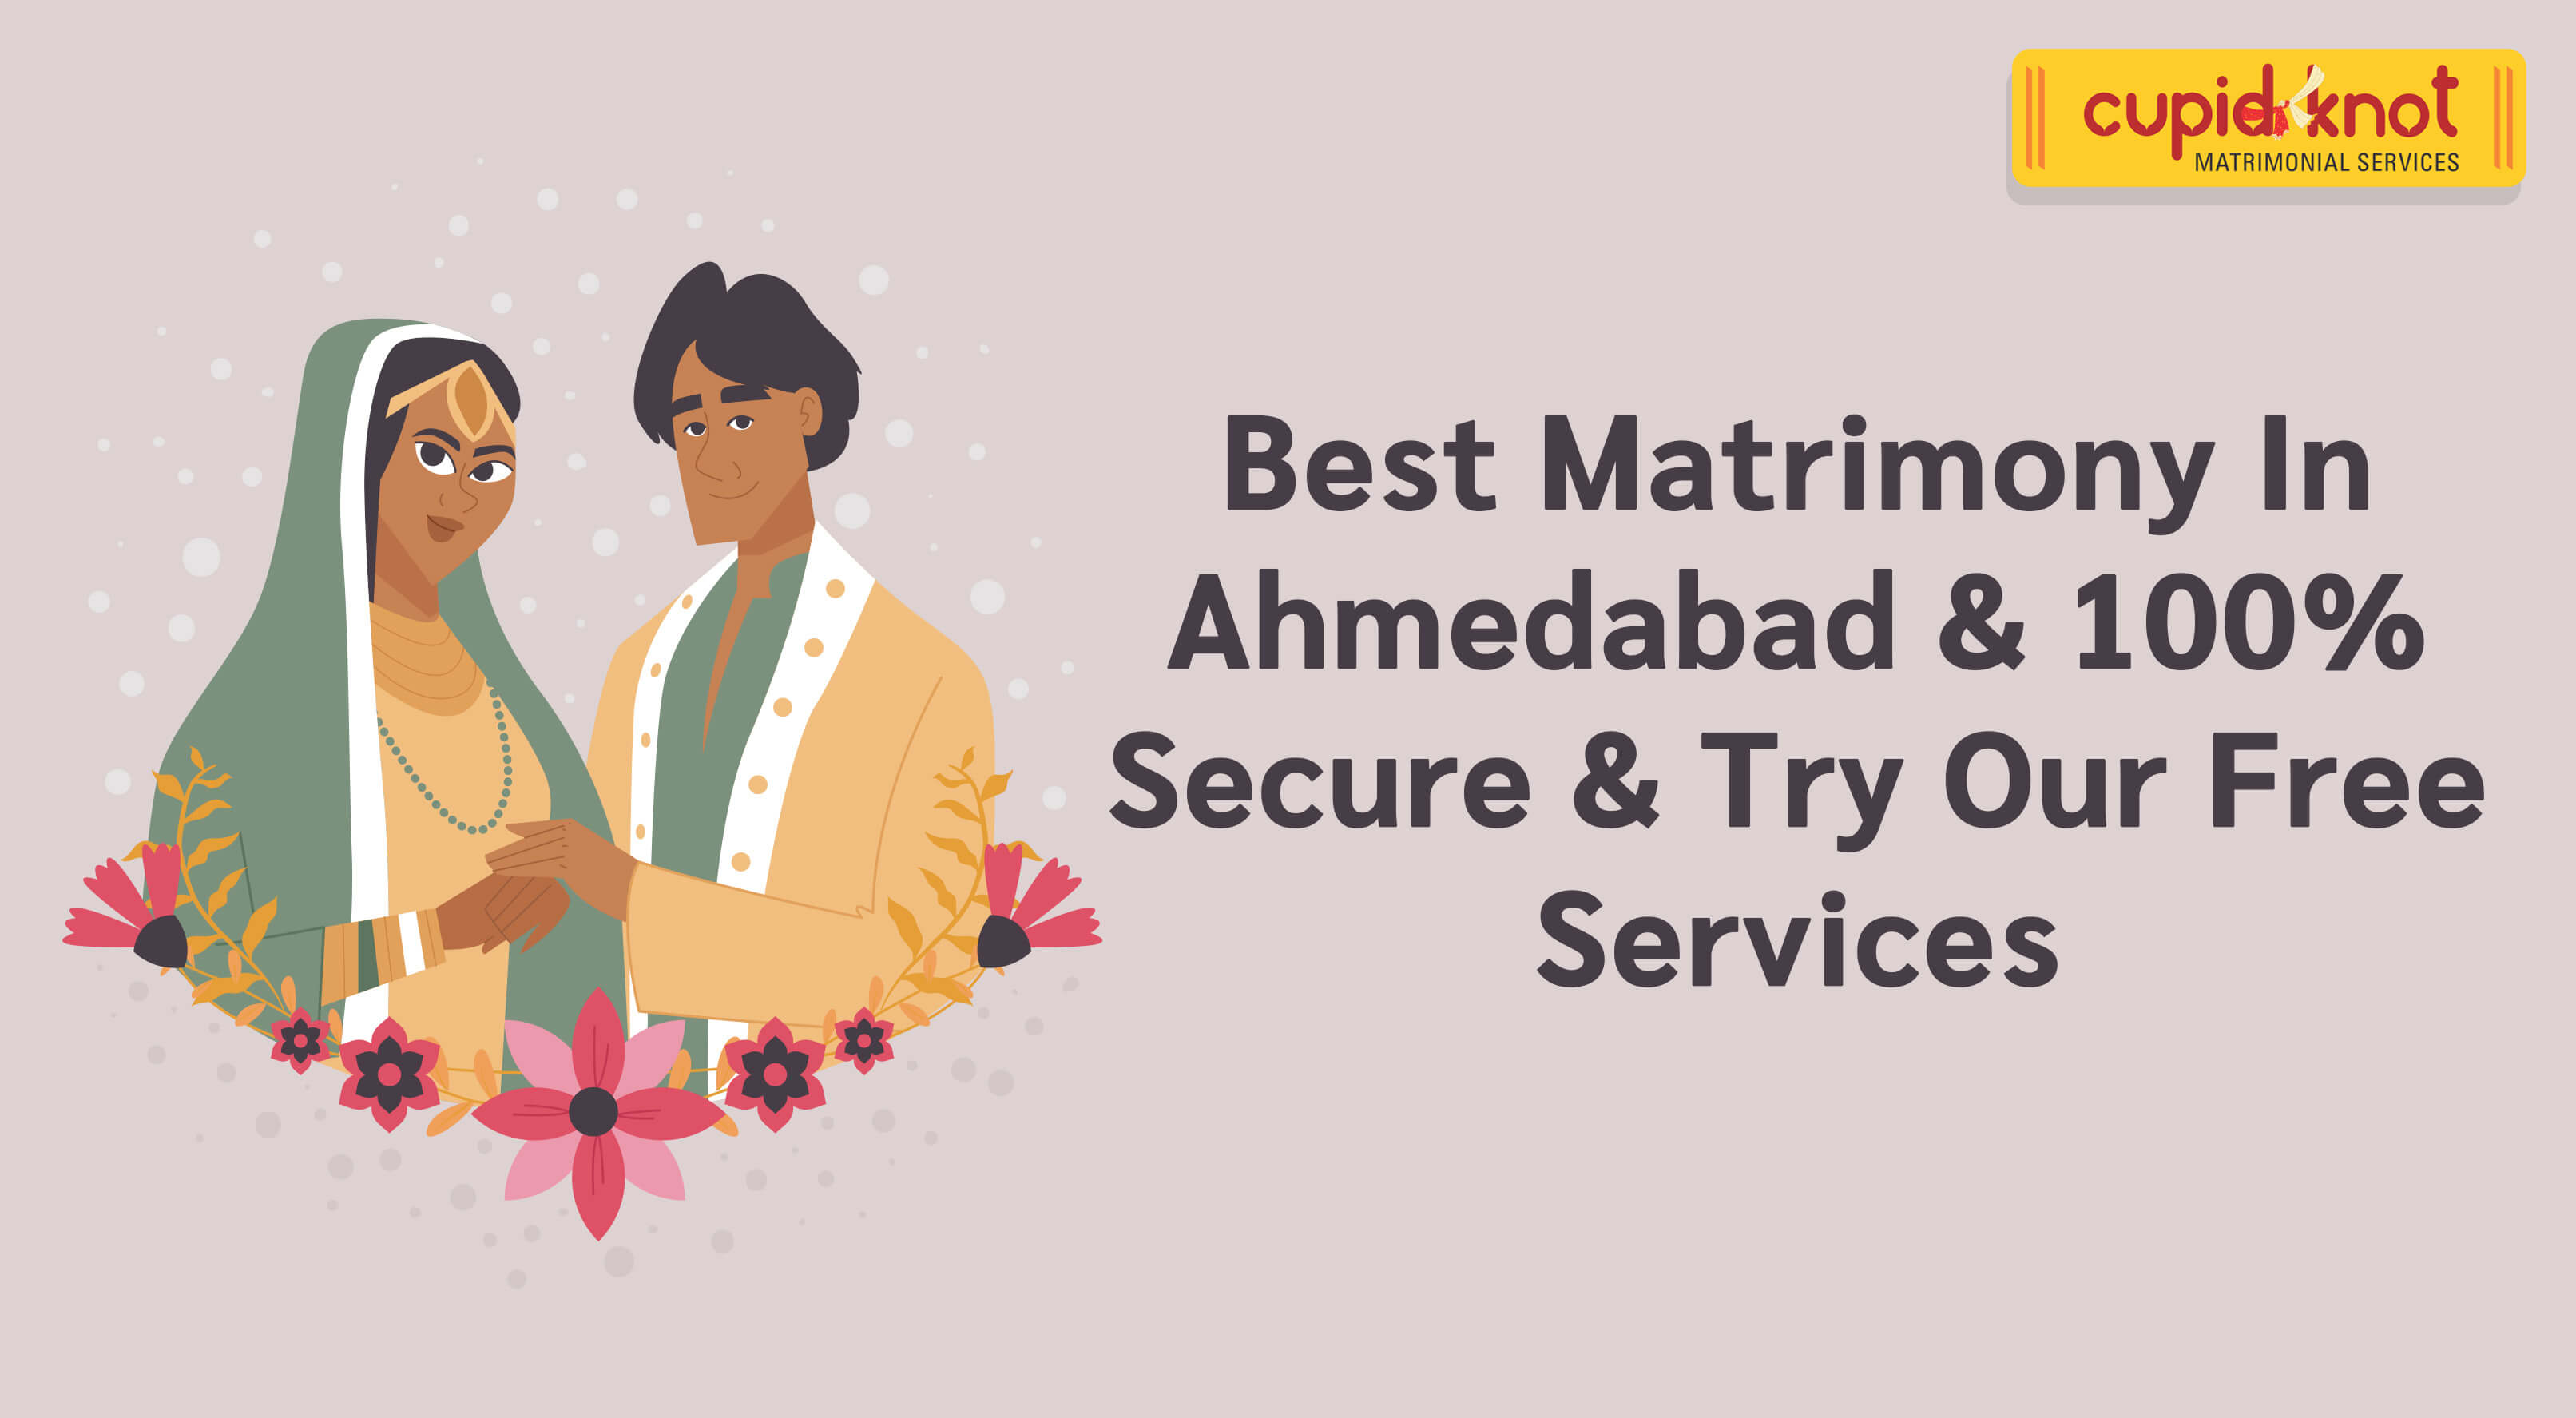 Best Matrimony in Ahmedabad & 100% Secure & Try Our Free Services